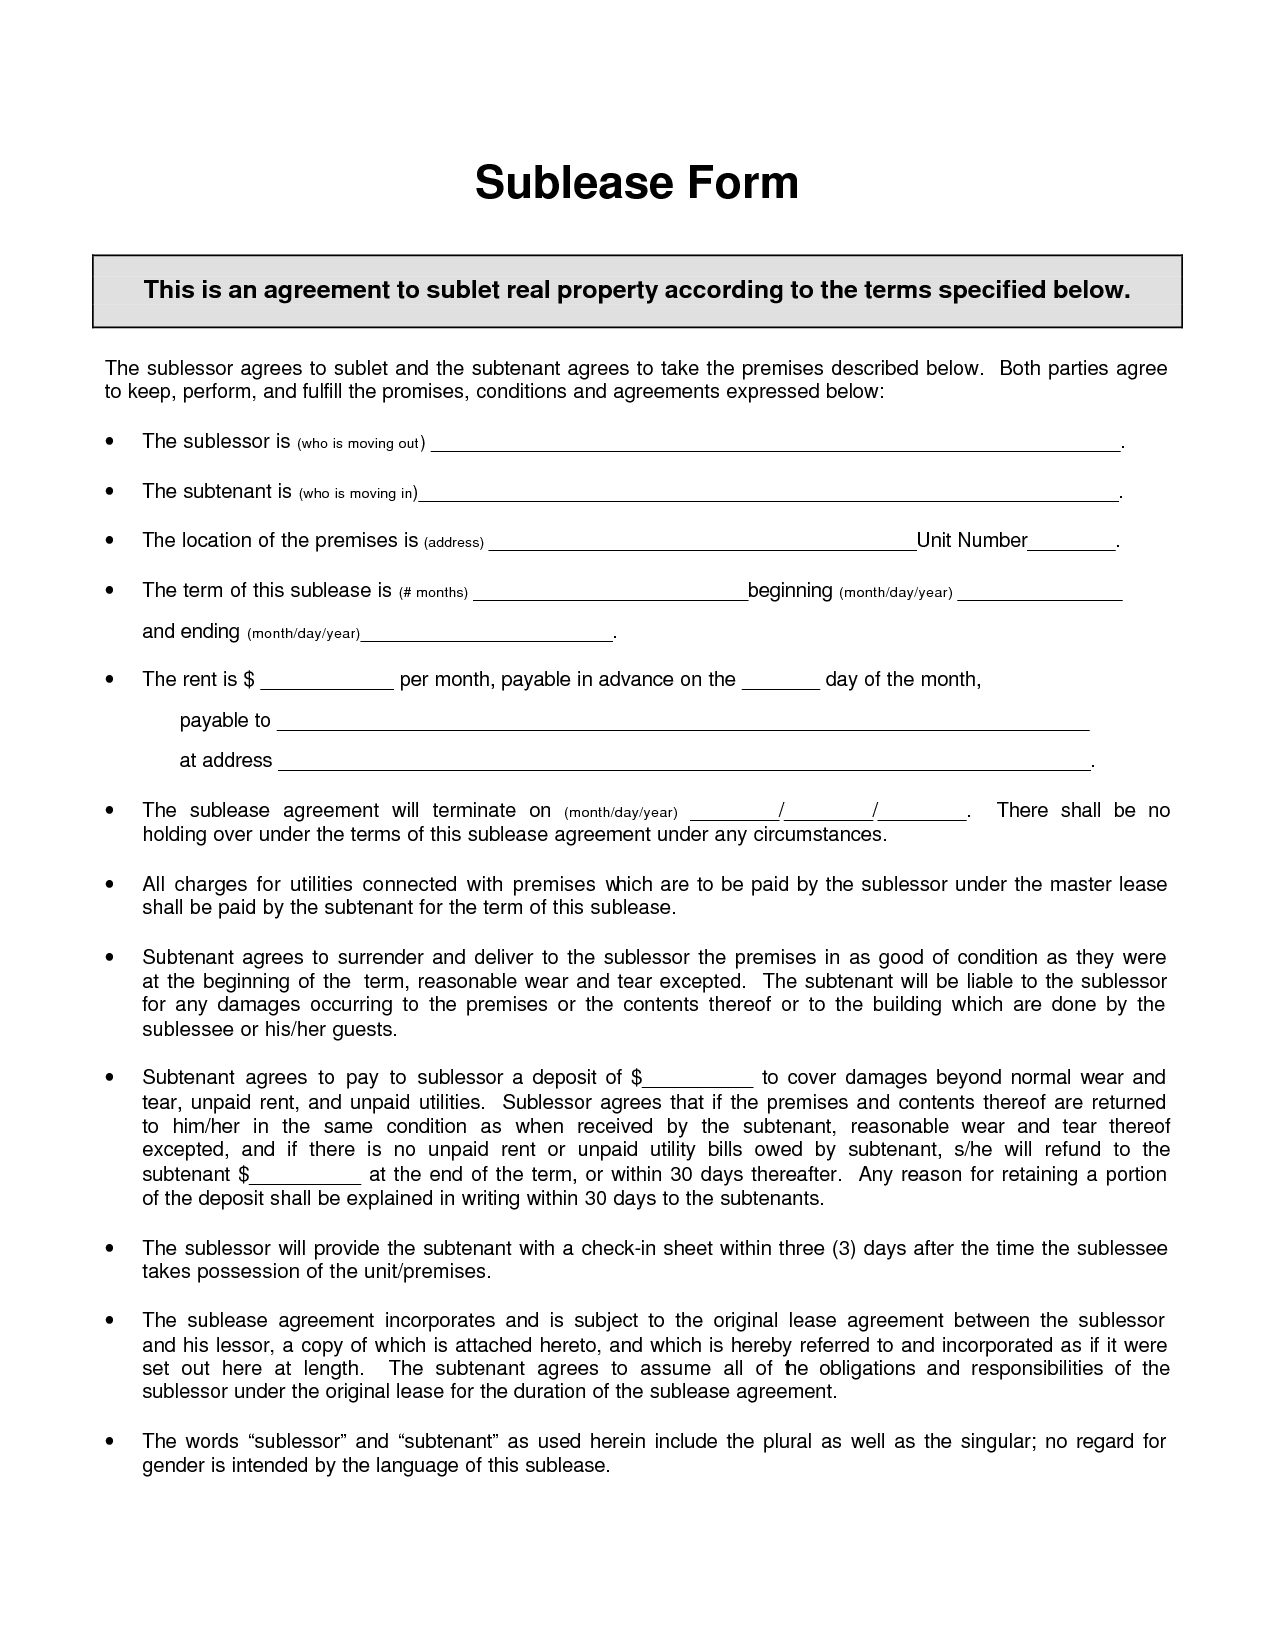 Sublease Agreement Template Invitation Templates sublet – Sublet Contract Template